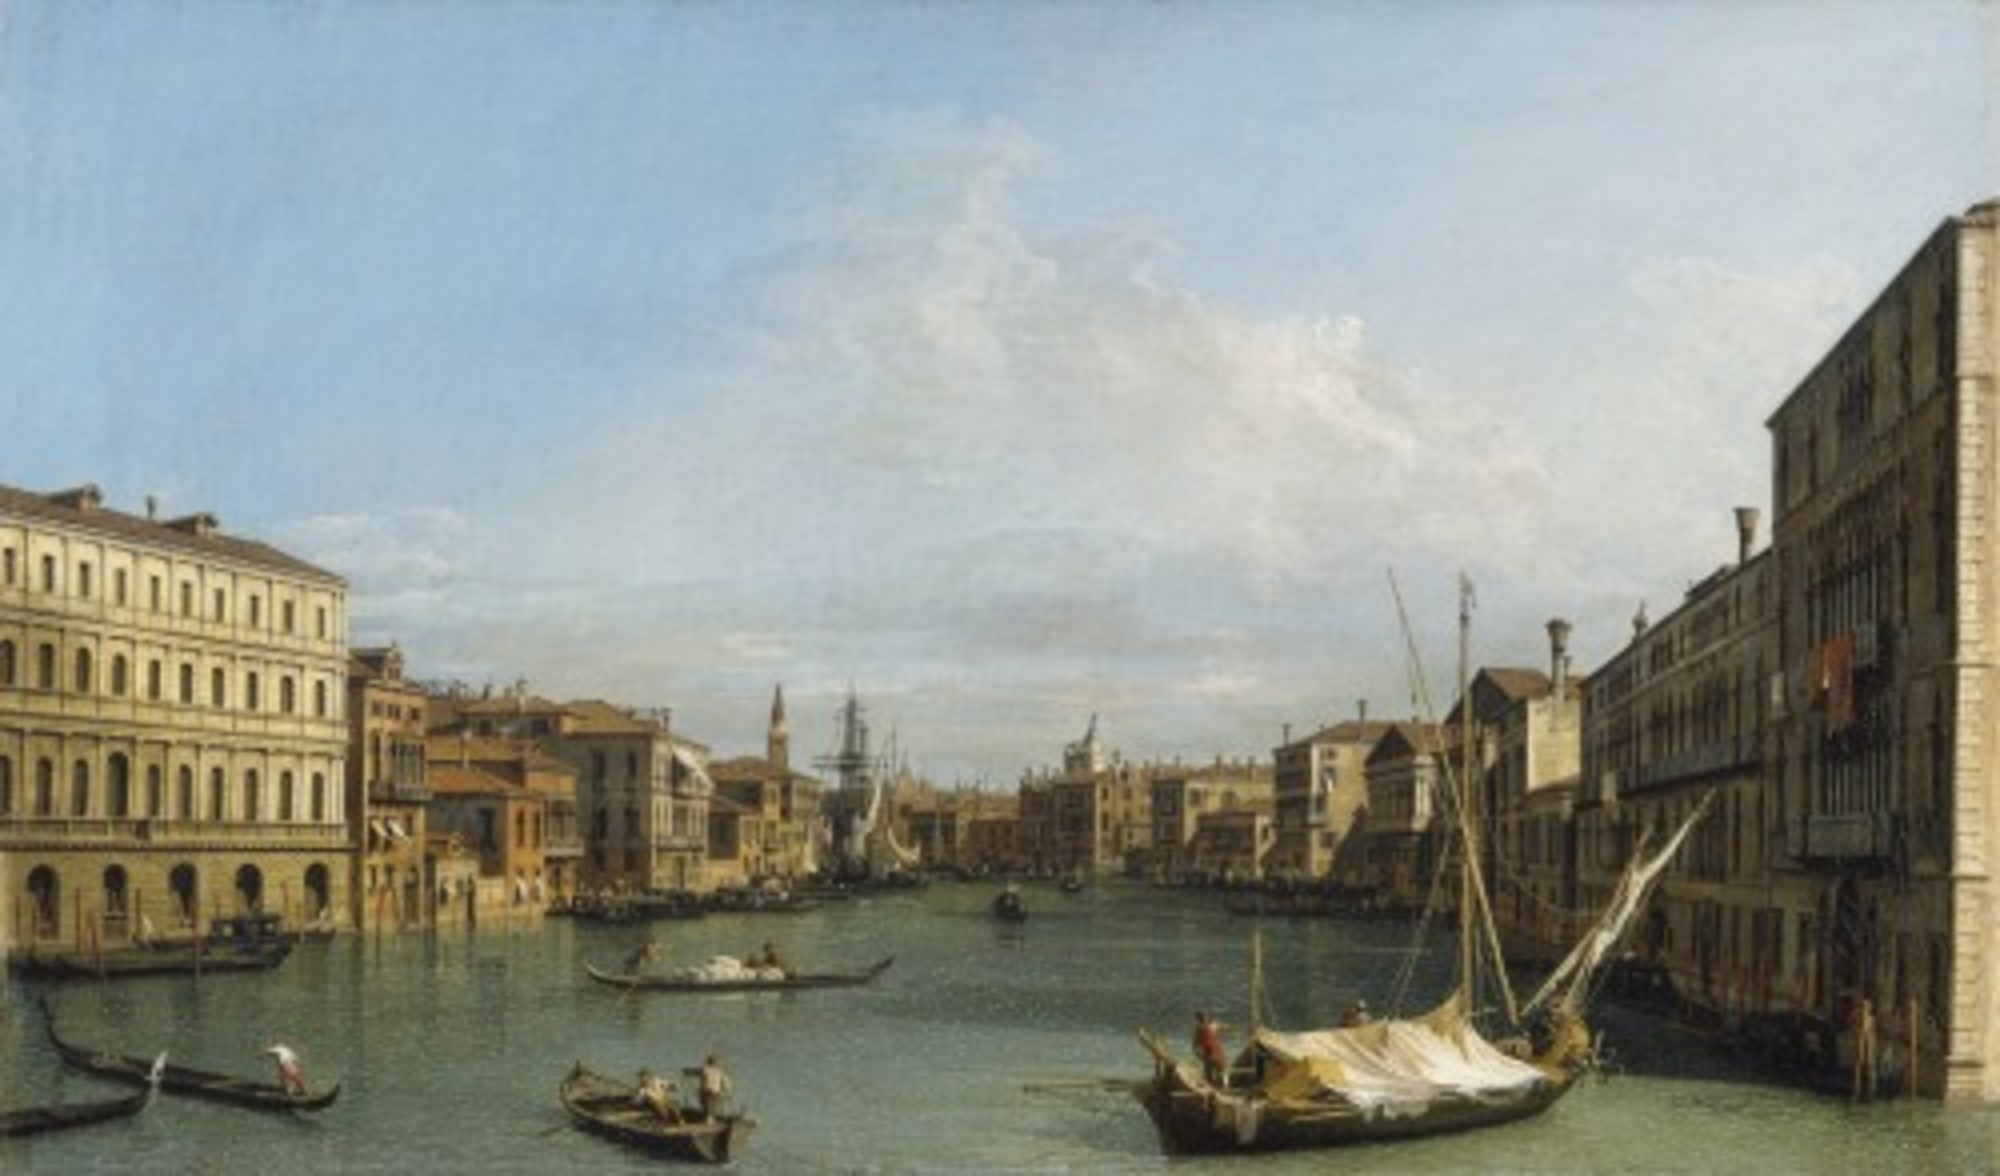 Canaletto---The-Grand-Canal-looking-south-from-Ca-Foscari-to-the-Carita-RCIN-401404.jpg